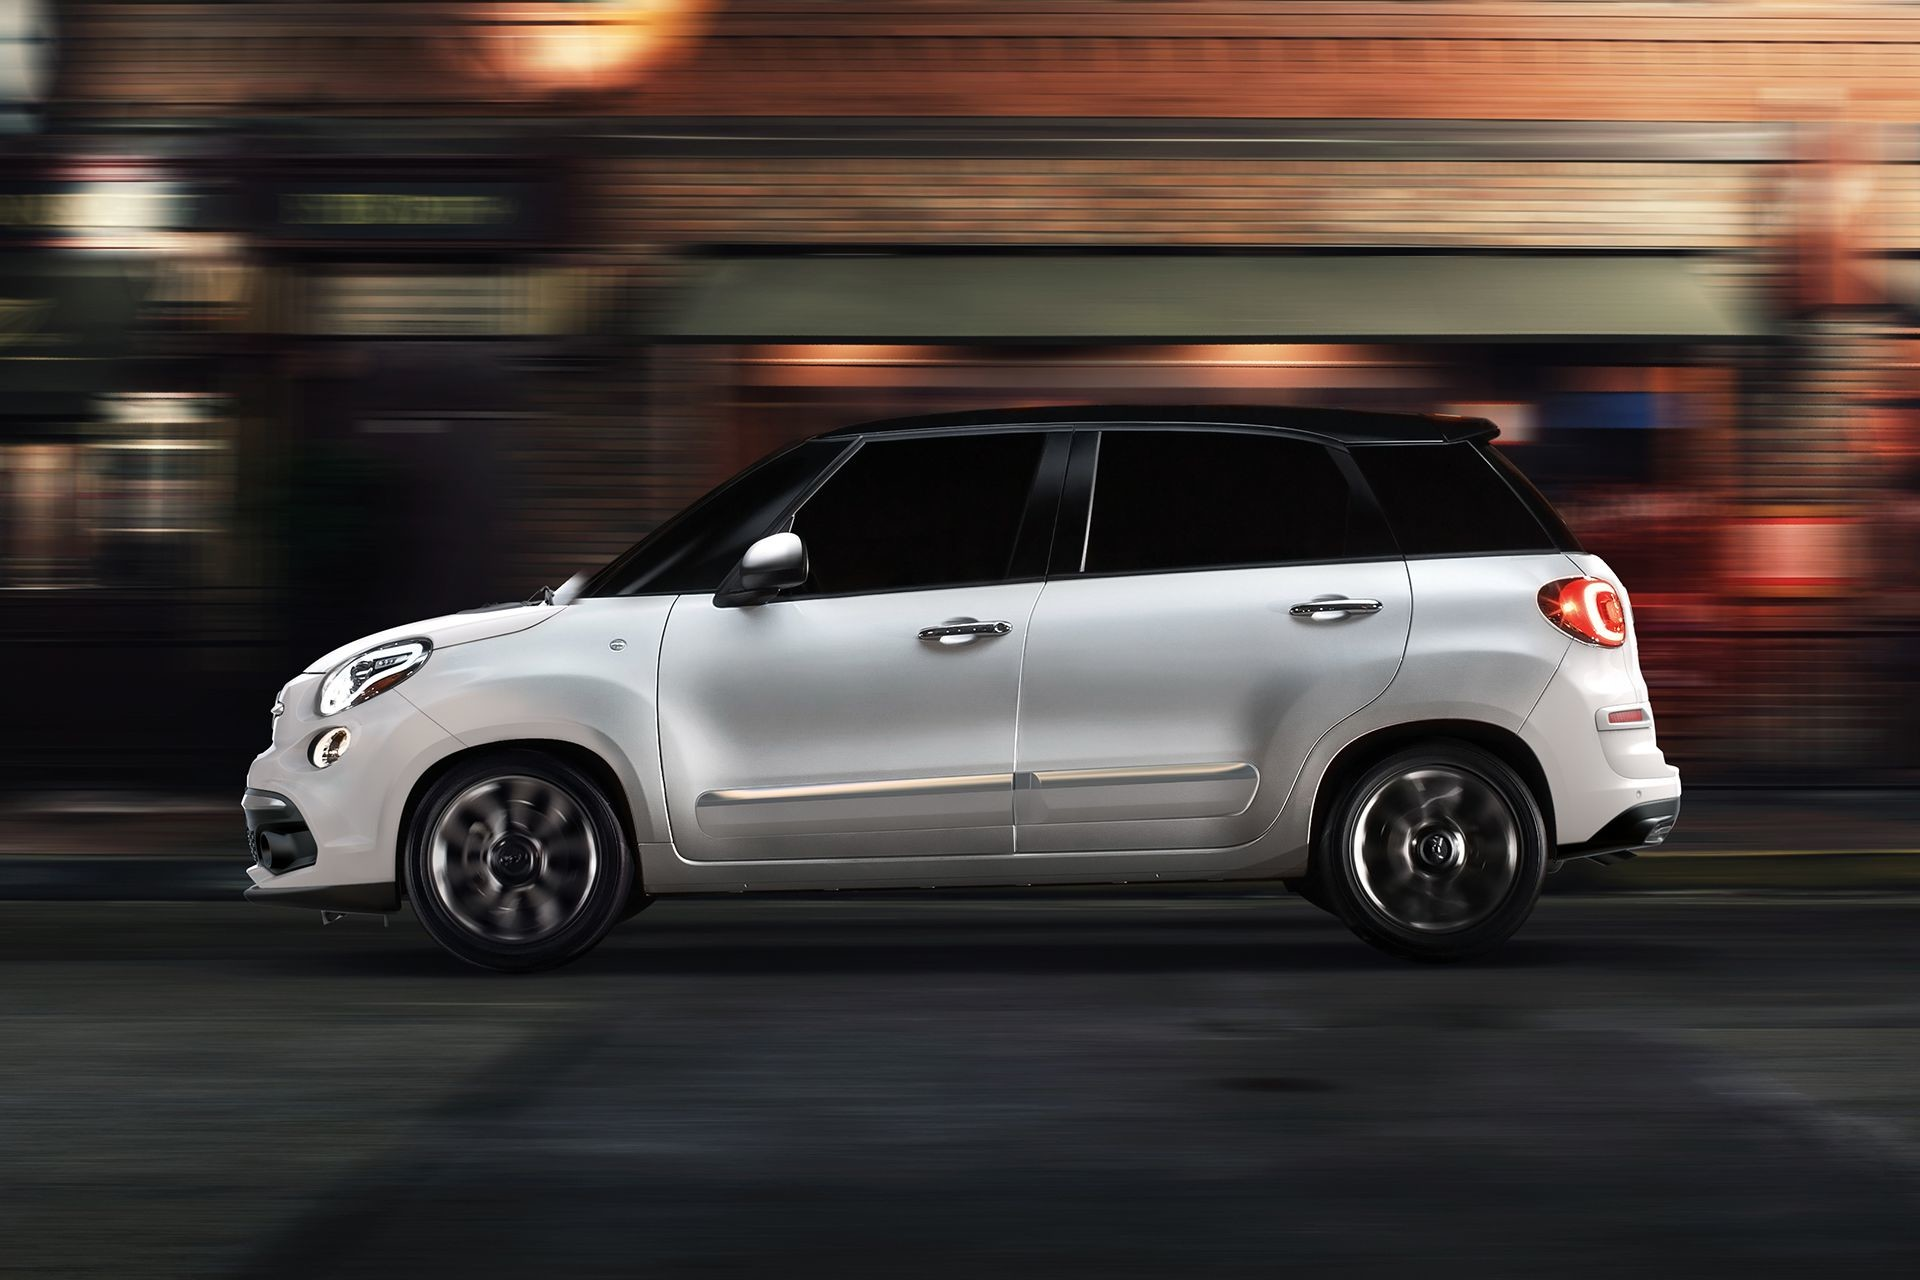 2018 Fiat 500l exterior every ride is safe and secure